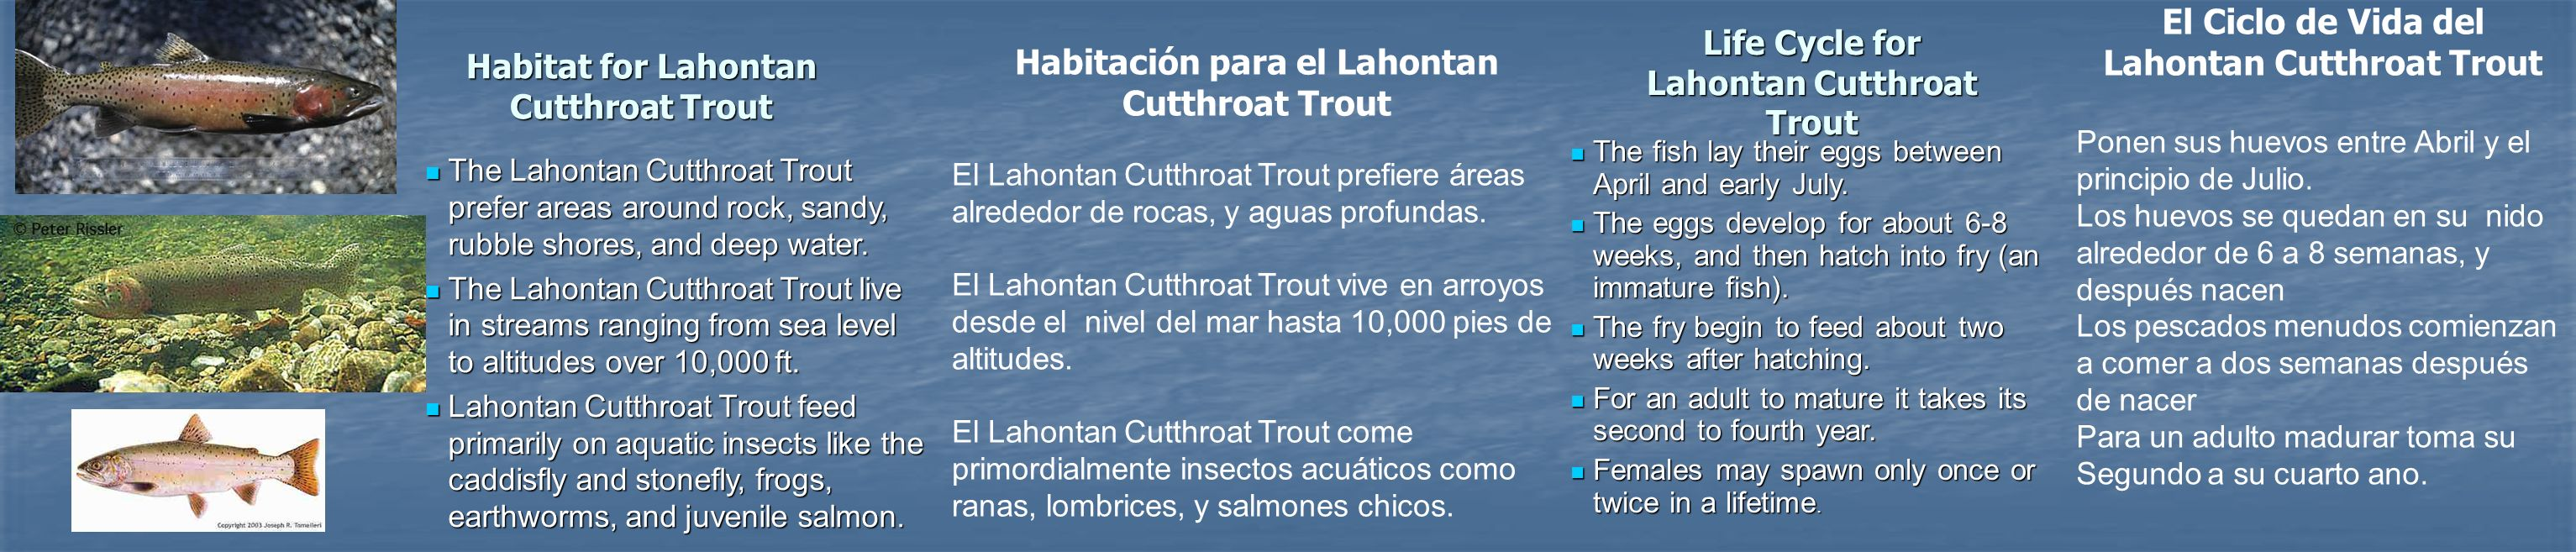 Cool Facts of the Lahontan Cutthroat Trout The Lahontan Cutthroat trout was the diet of Piutes and other Native tribes.